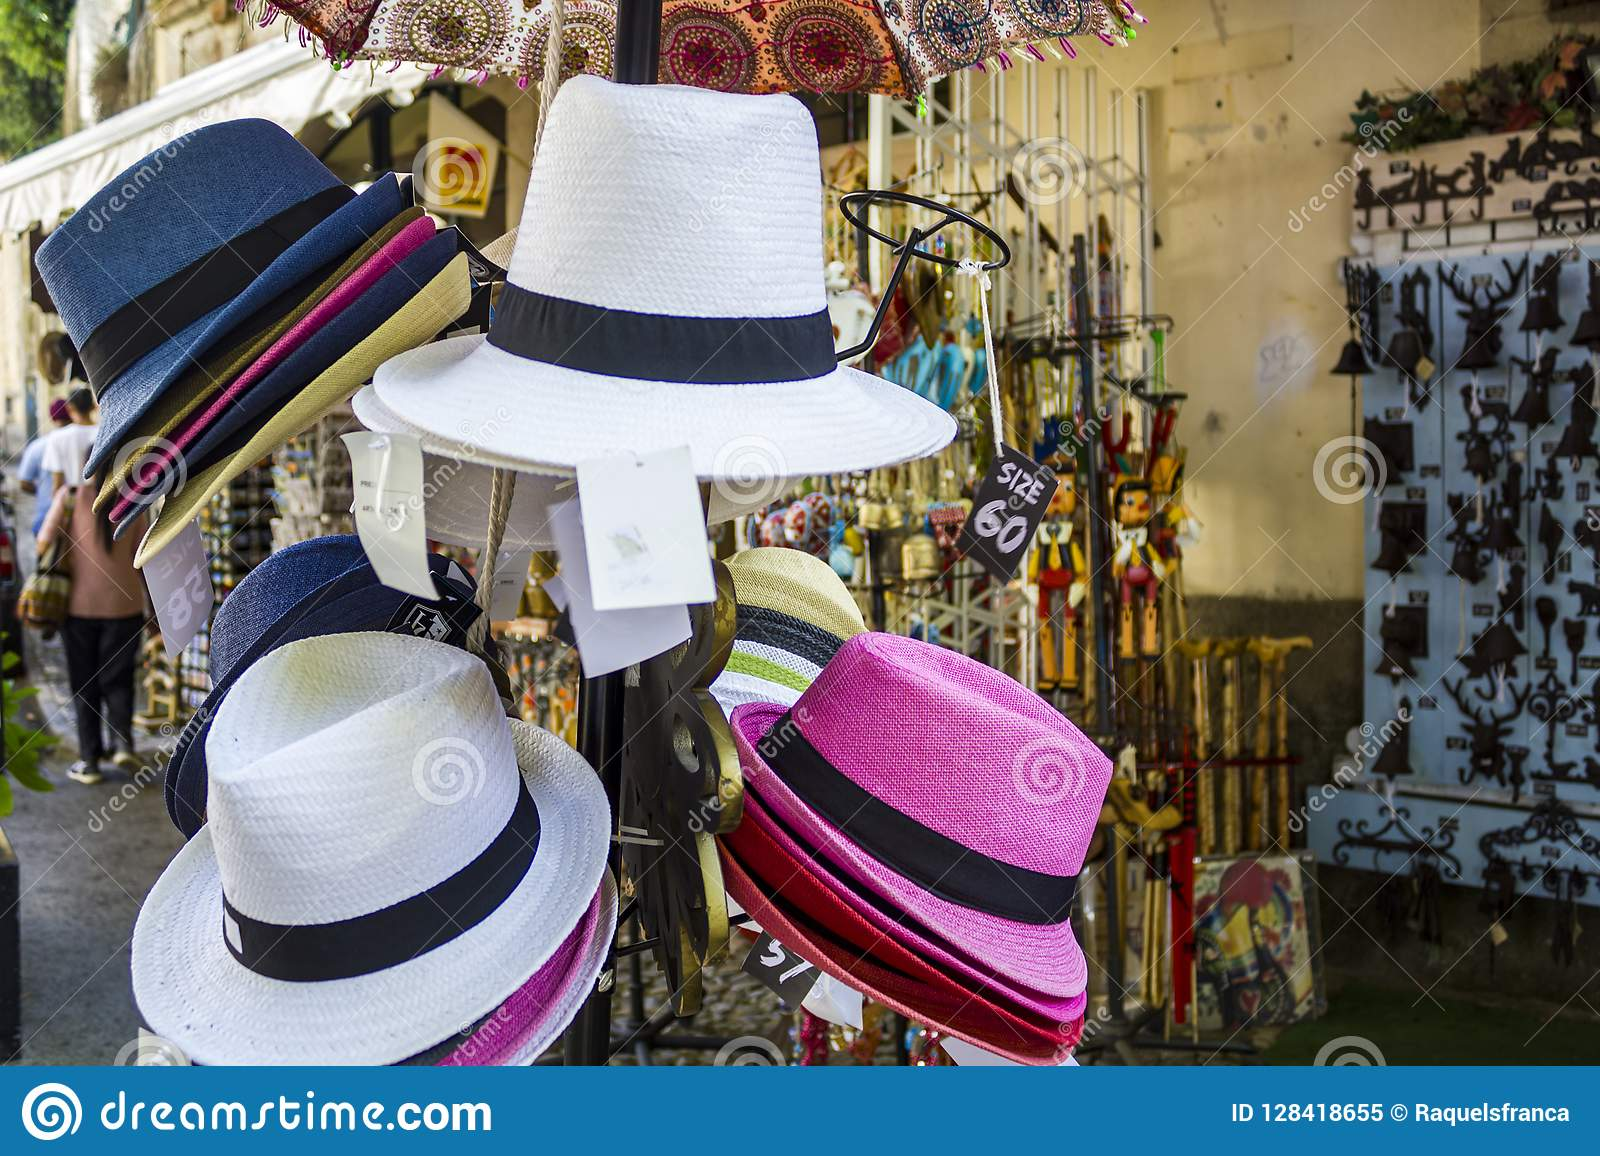 462847b2 Hats For Sale In Souvenir Shop Editorial Image - Image of kiosk ...